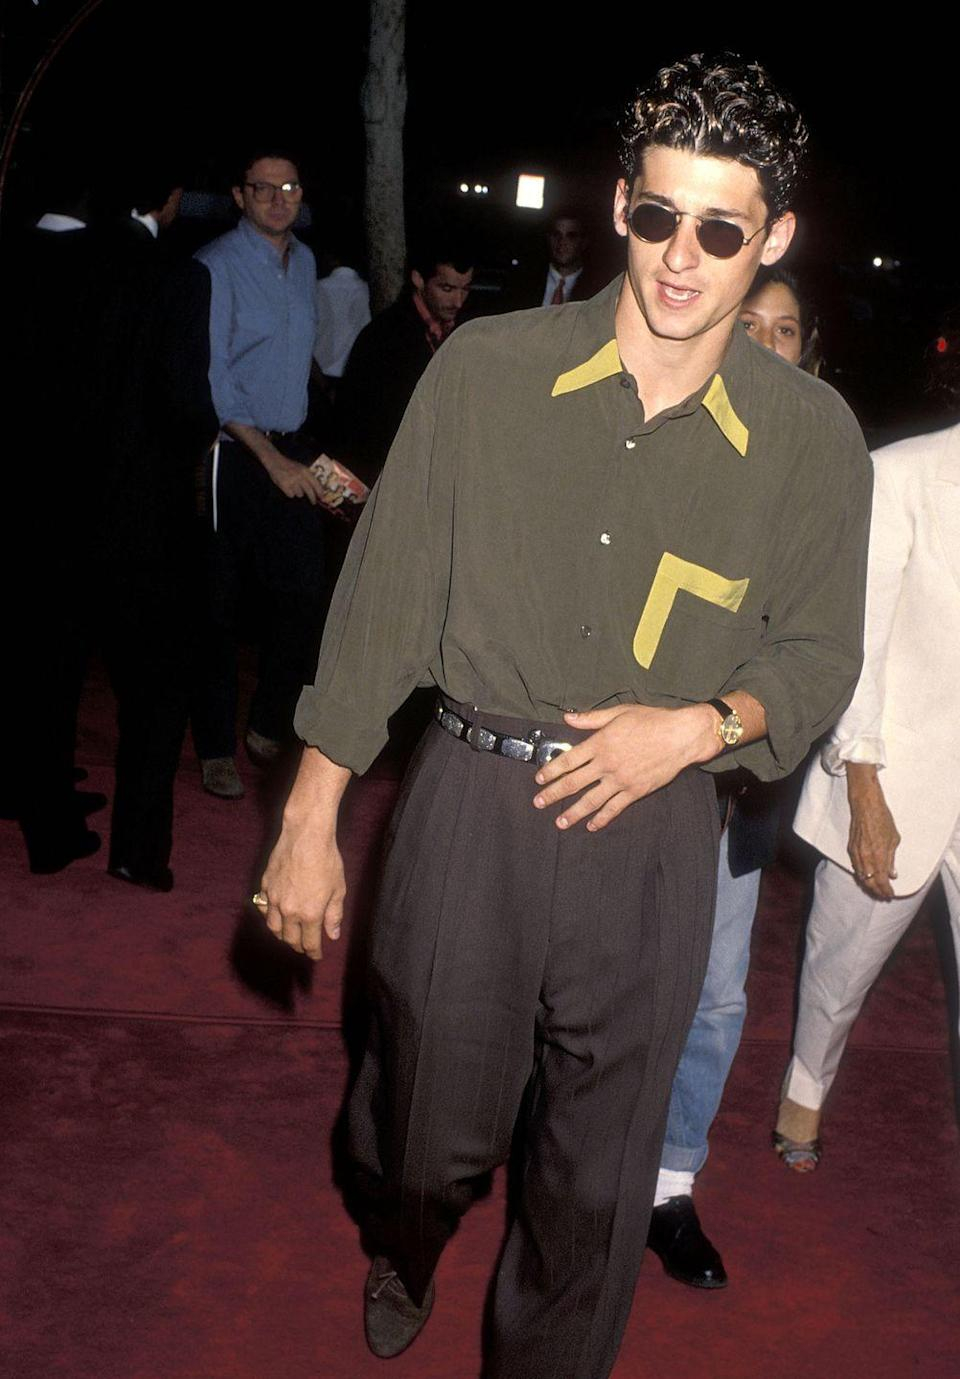 <p>When they say fashion is cyclical, this is what they mean. The loose, silky shirt and oversized pants are quintessentially '90s, but they are also reappearing on stylish men today. Take notes.</p>